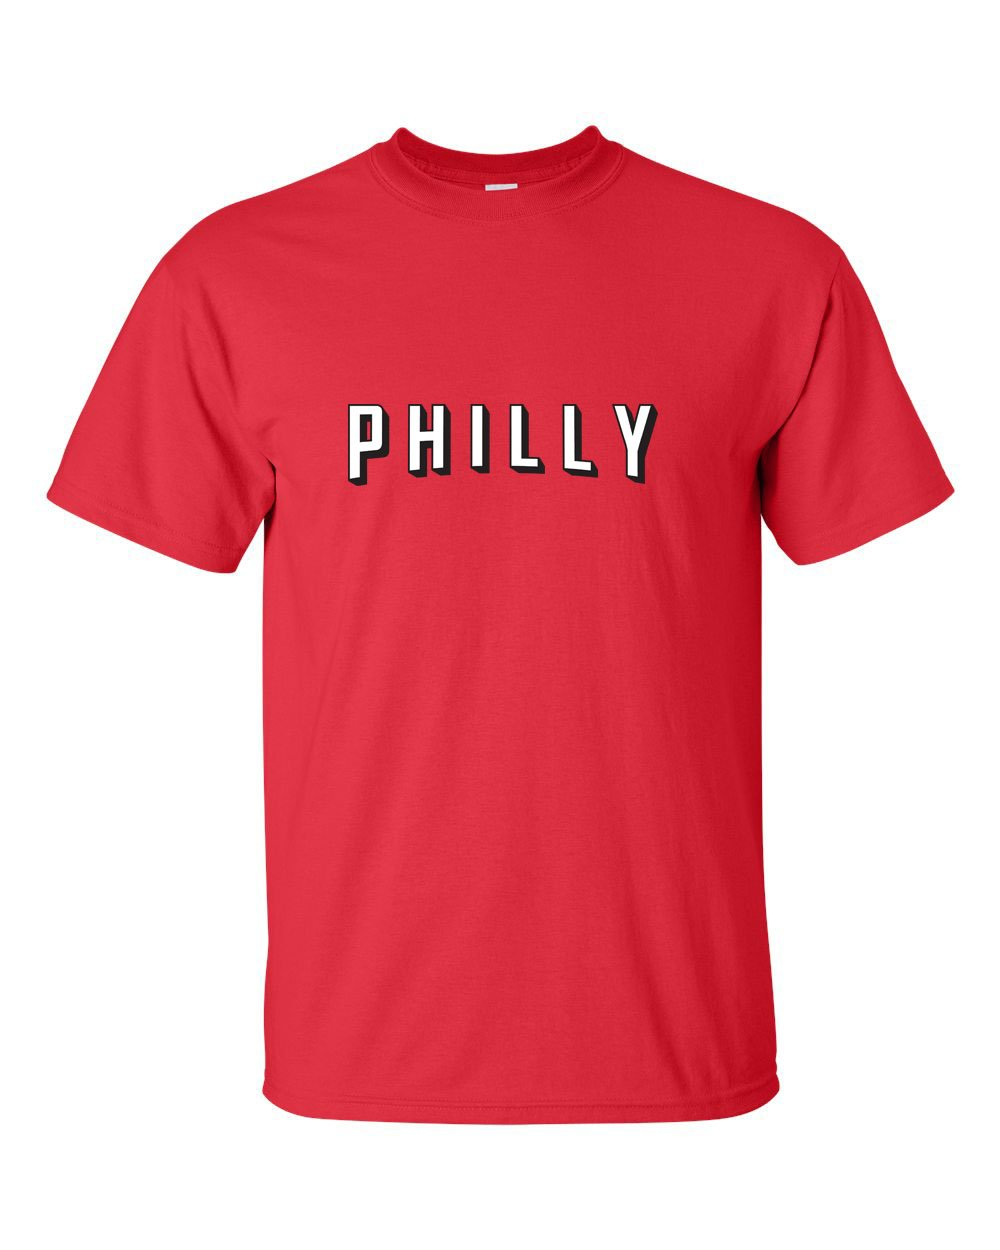 Philly-Flix Mens/Unisex T-Shirt